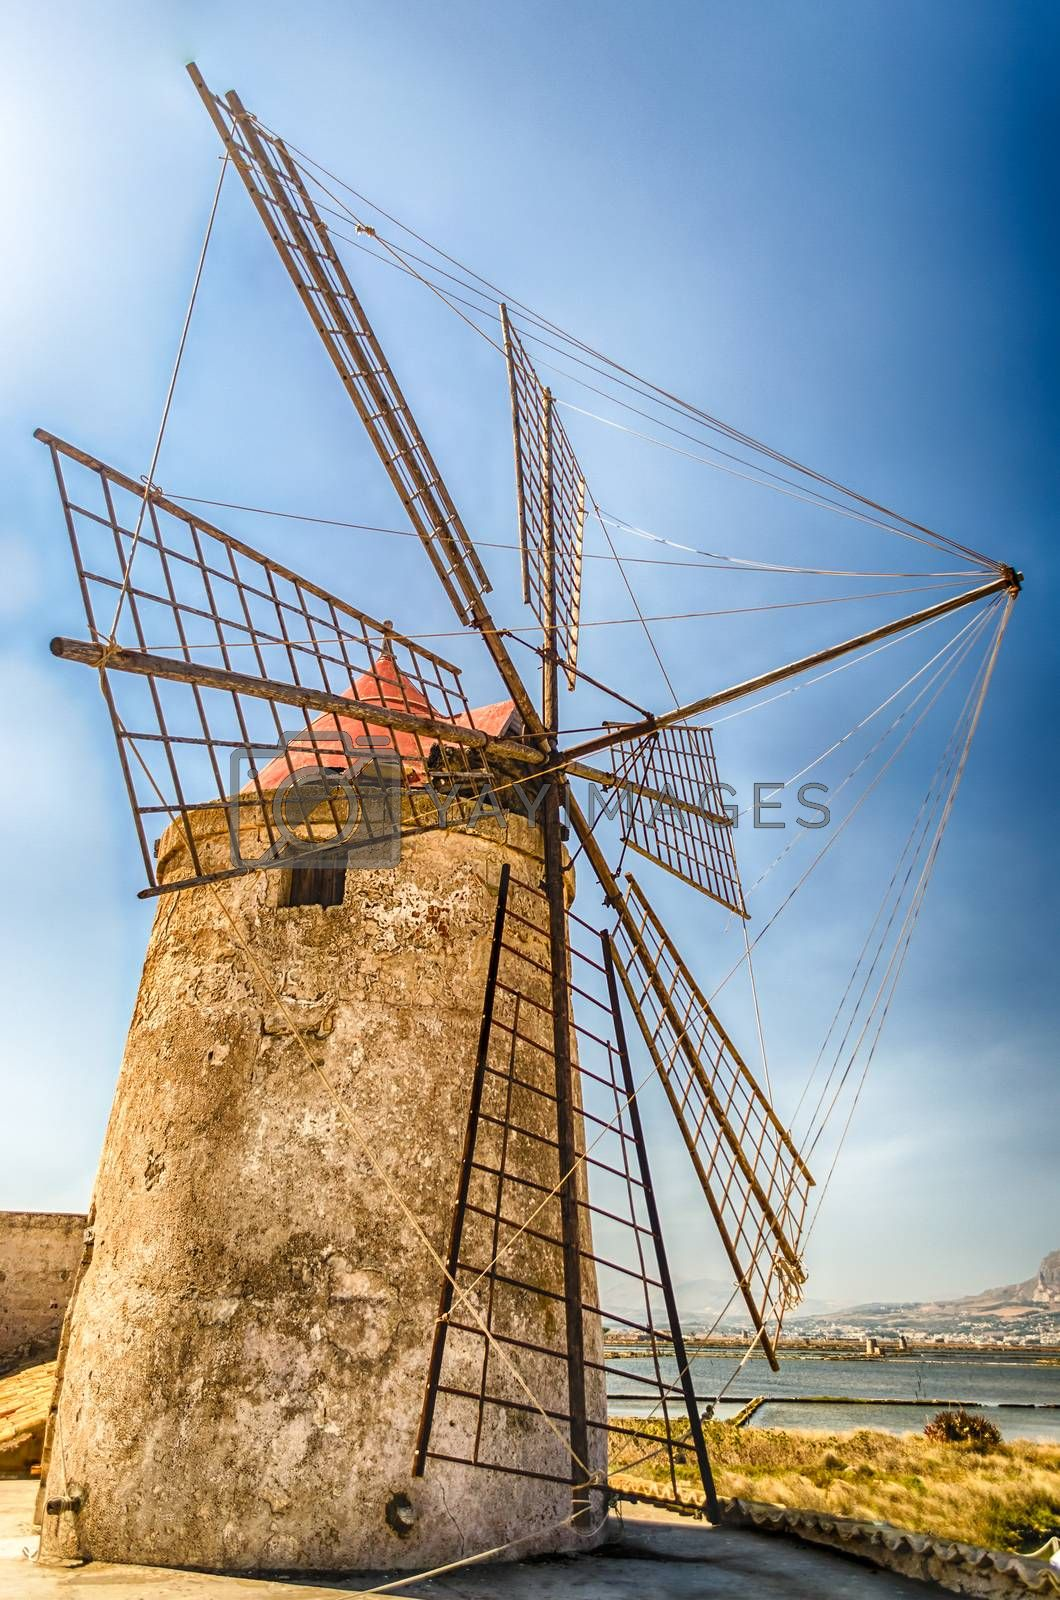 Old windmill for salt production in Motya near Trapani, Sicily, Italy